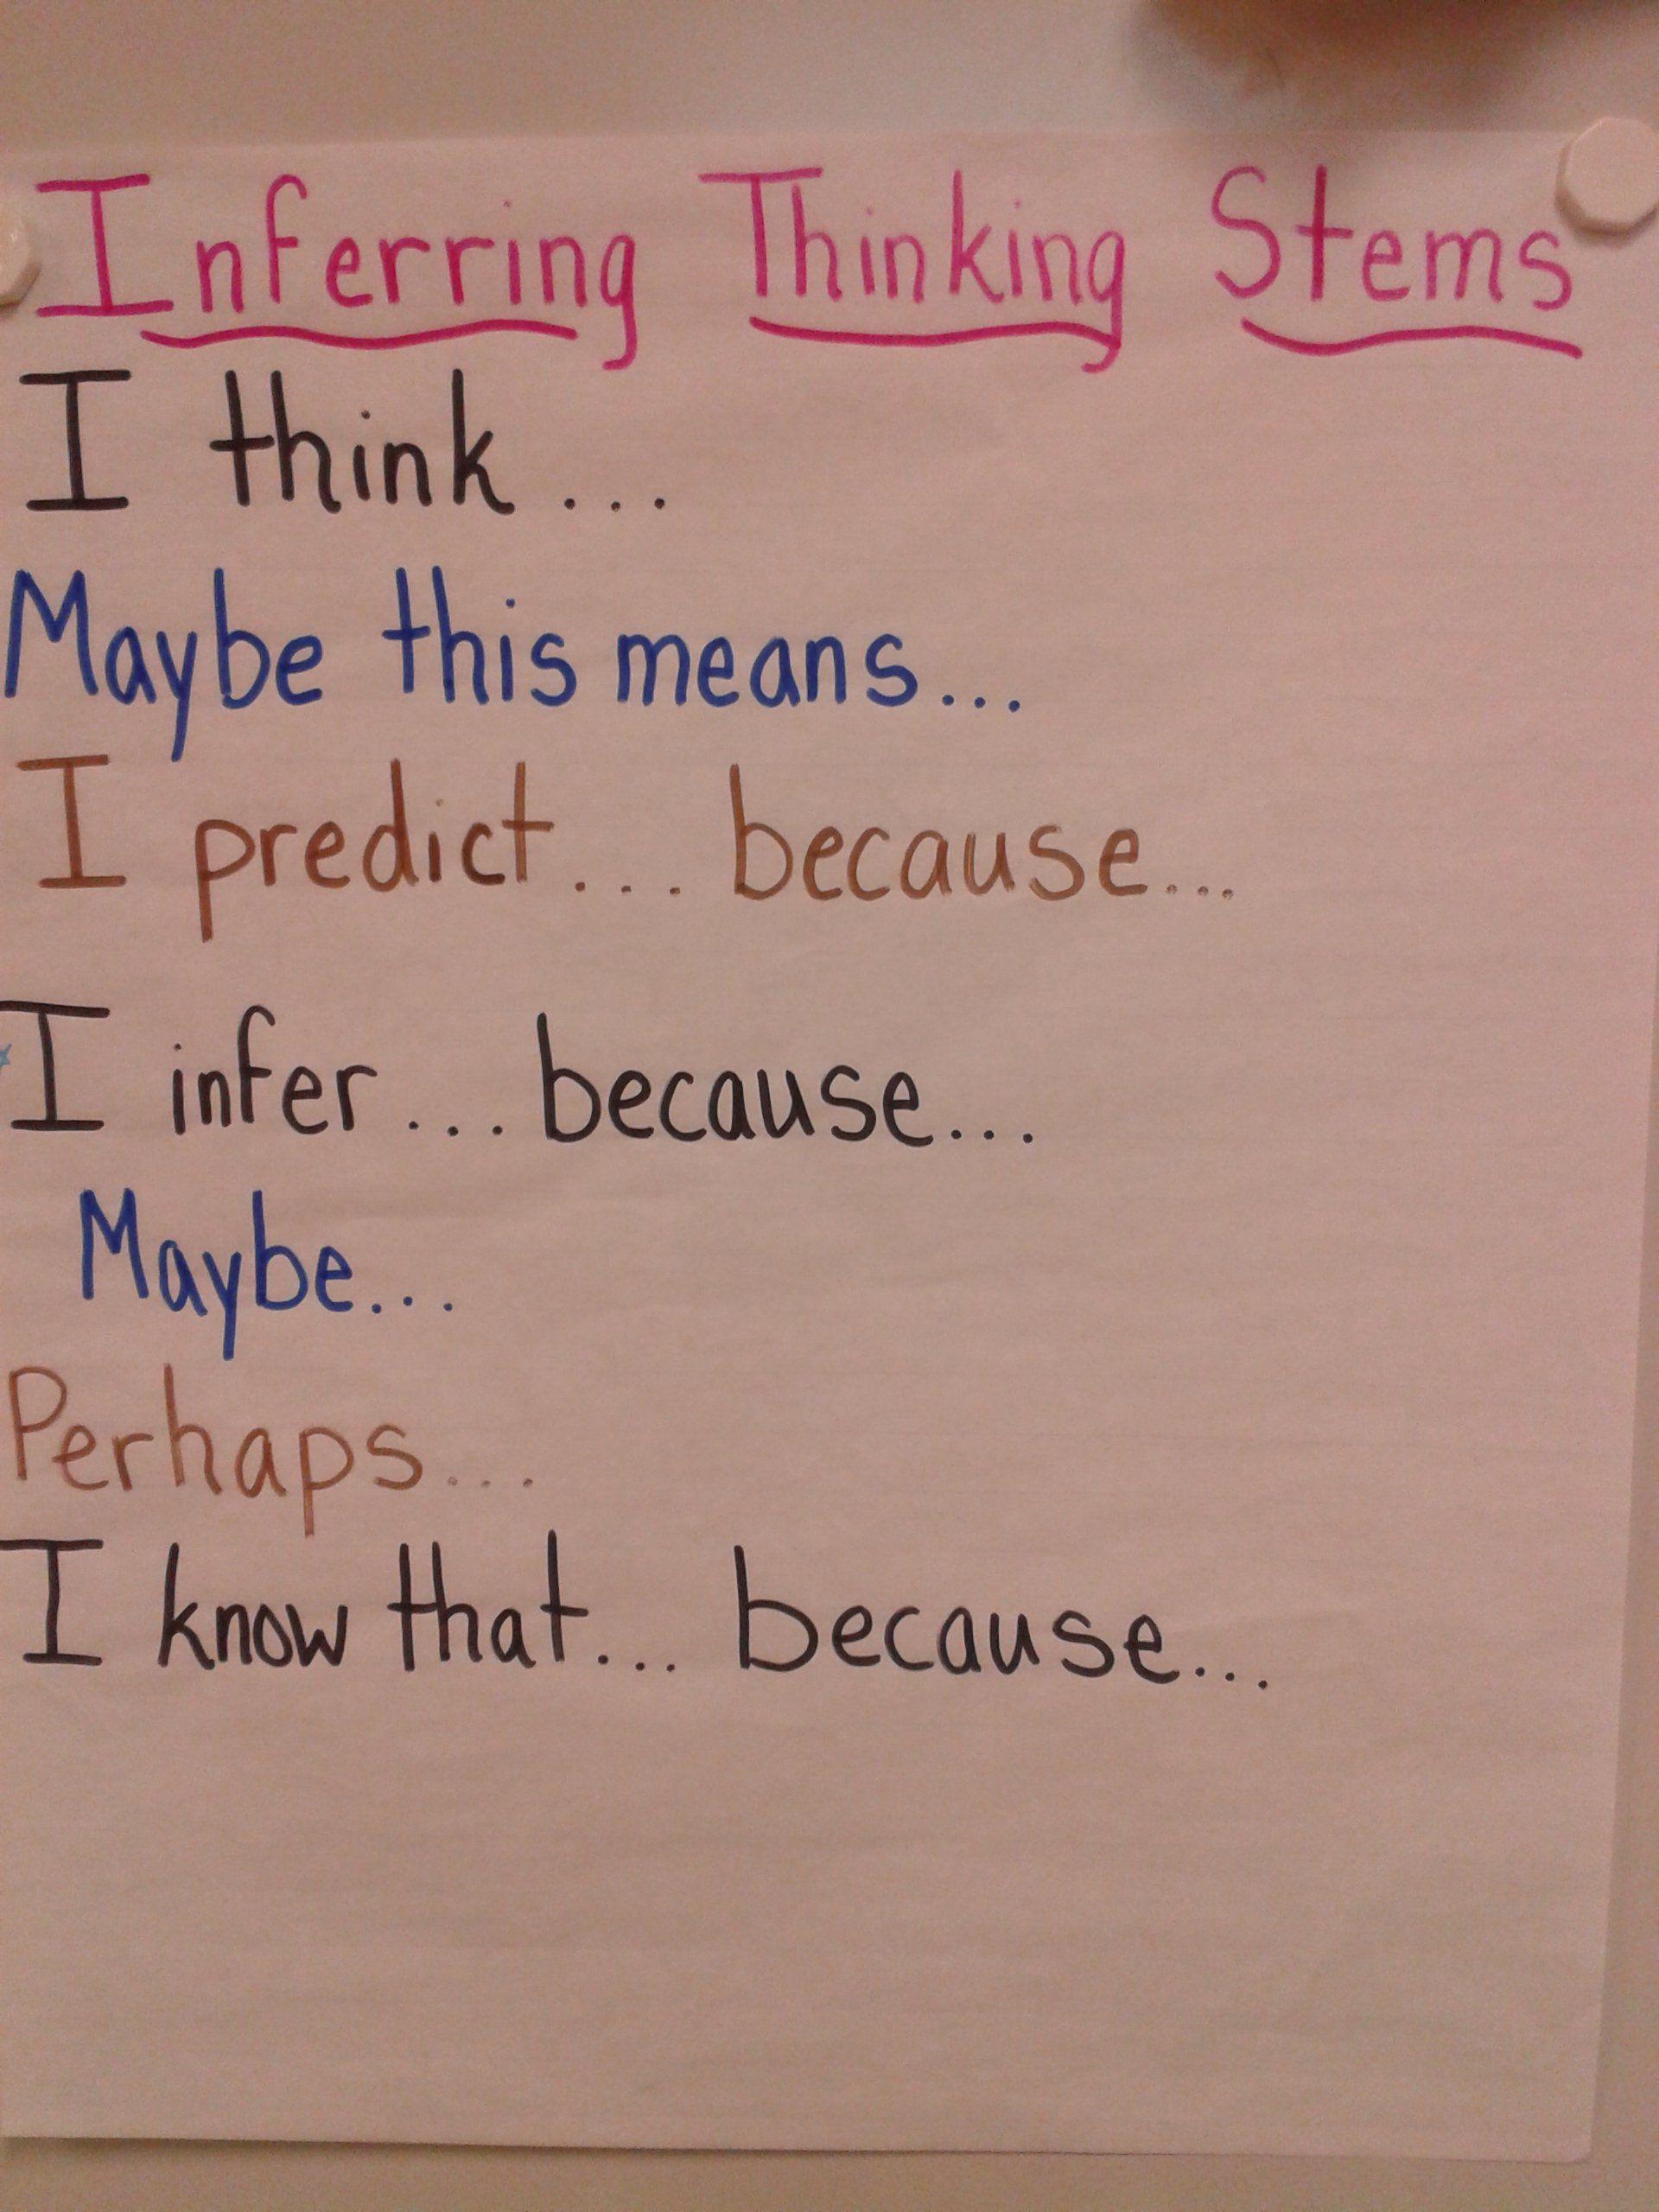 Thinking Stems In English For Inferring